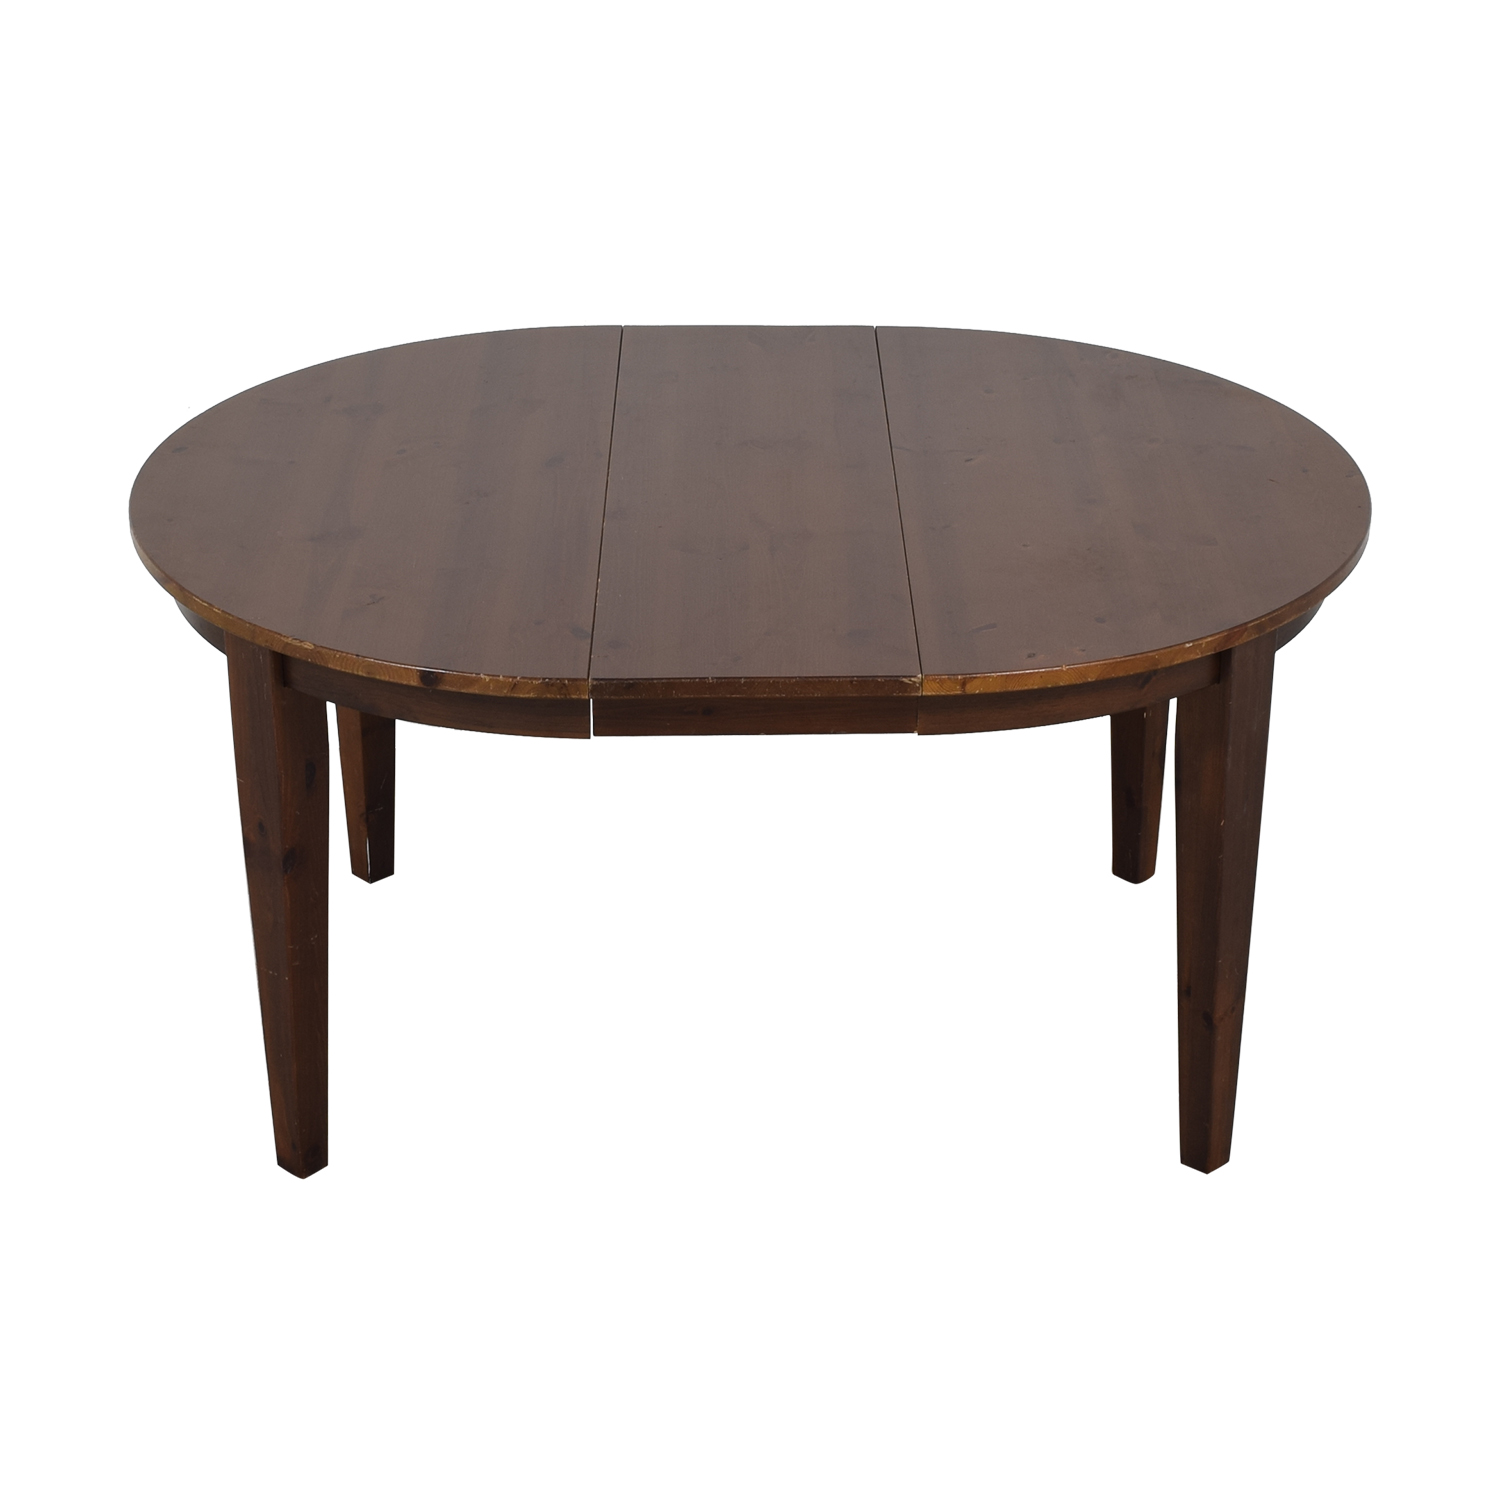 Round Dining Table price